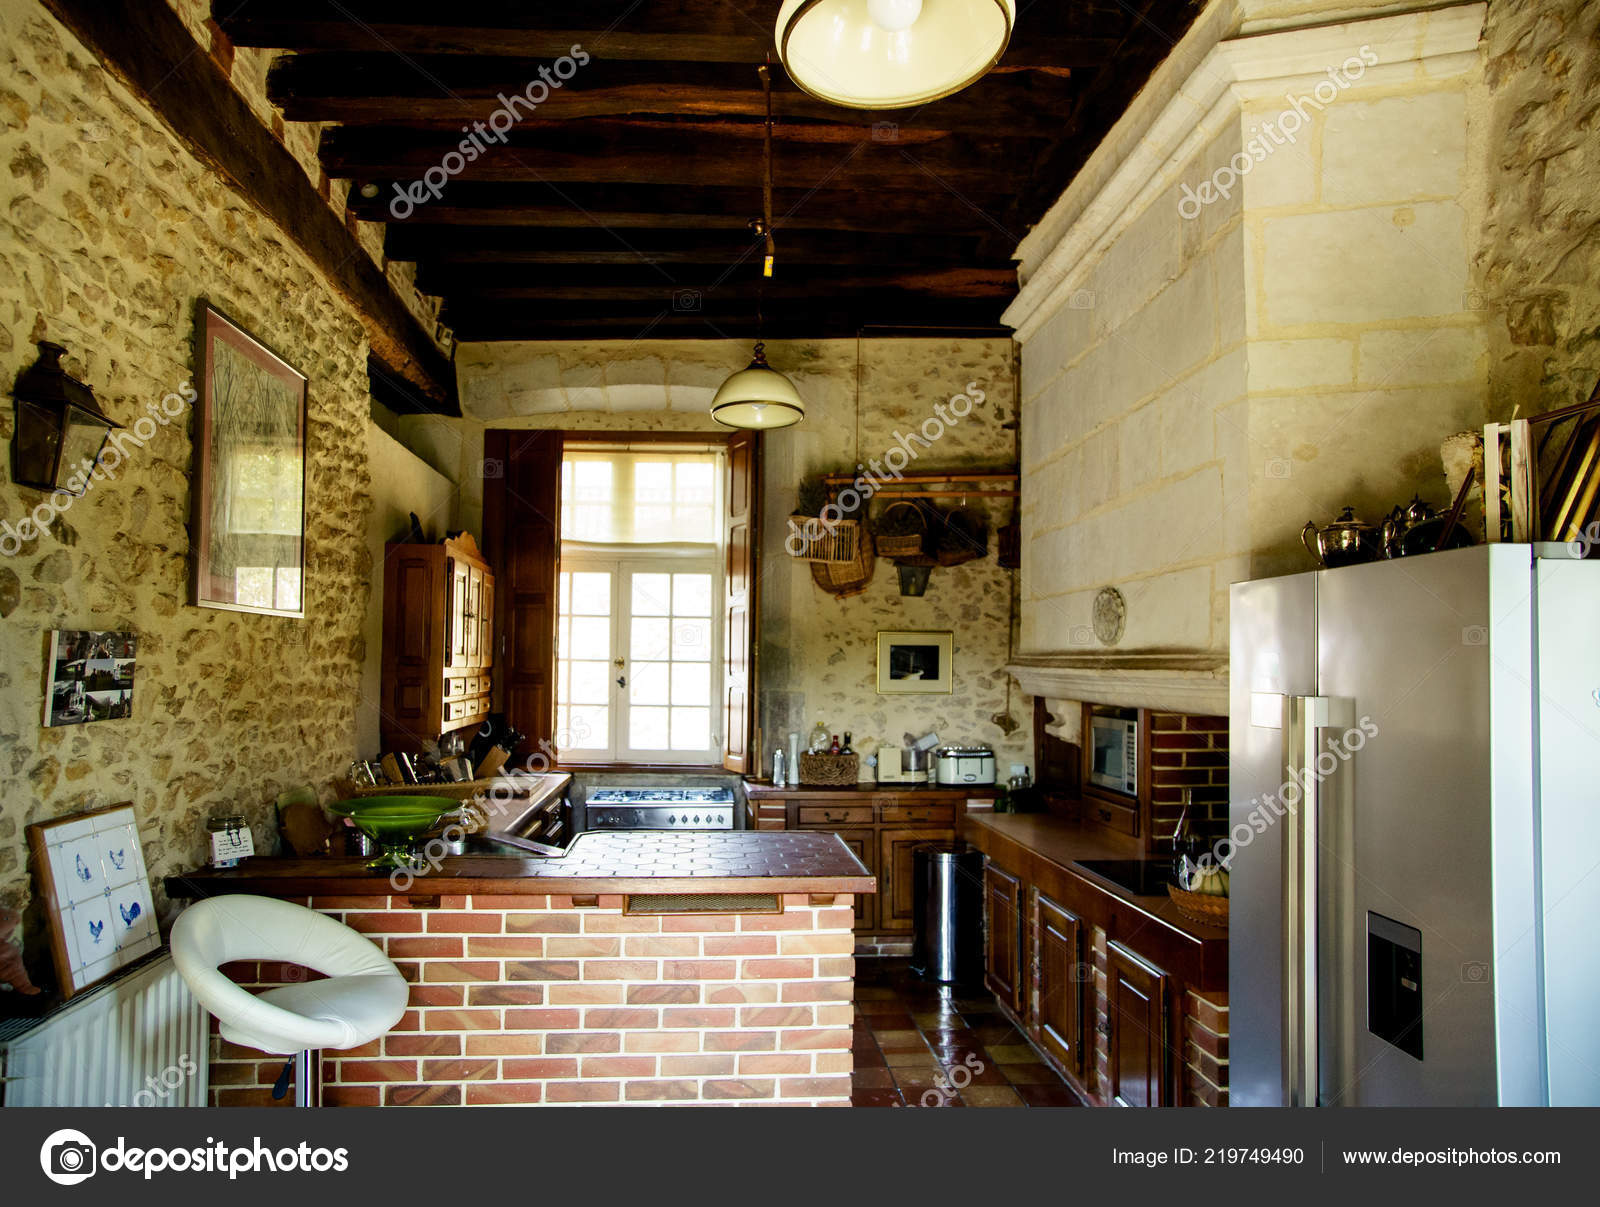 Poitiers France August 2018 Kitchen Interior French Chateau Vintage